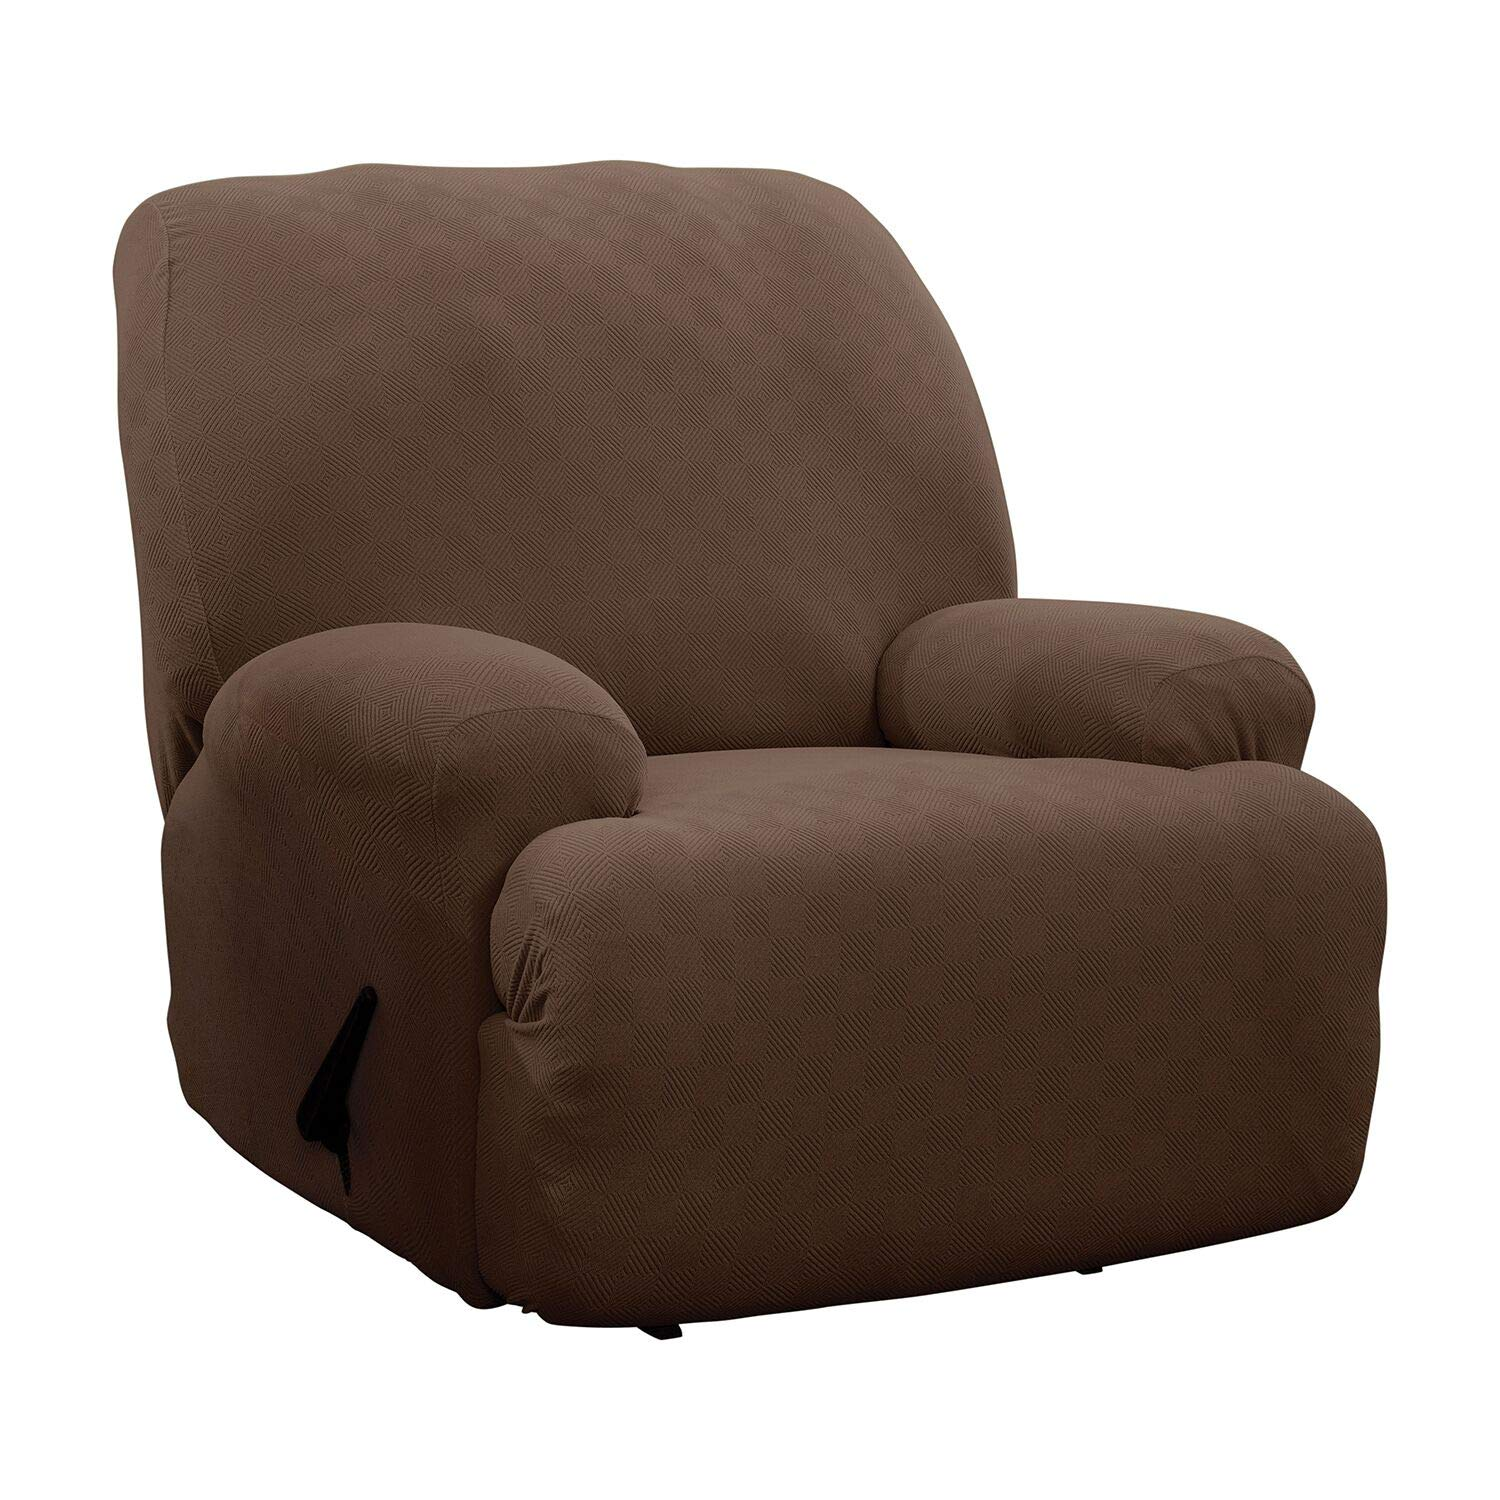 Stretch Sensations, Optic Jumbo Recliner Slipcover, Oversized Recliners, Perfect Chair Protection, Comfortable Easy Stretch Fabric (Chocolate) by Stretch Sensations